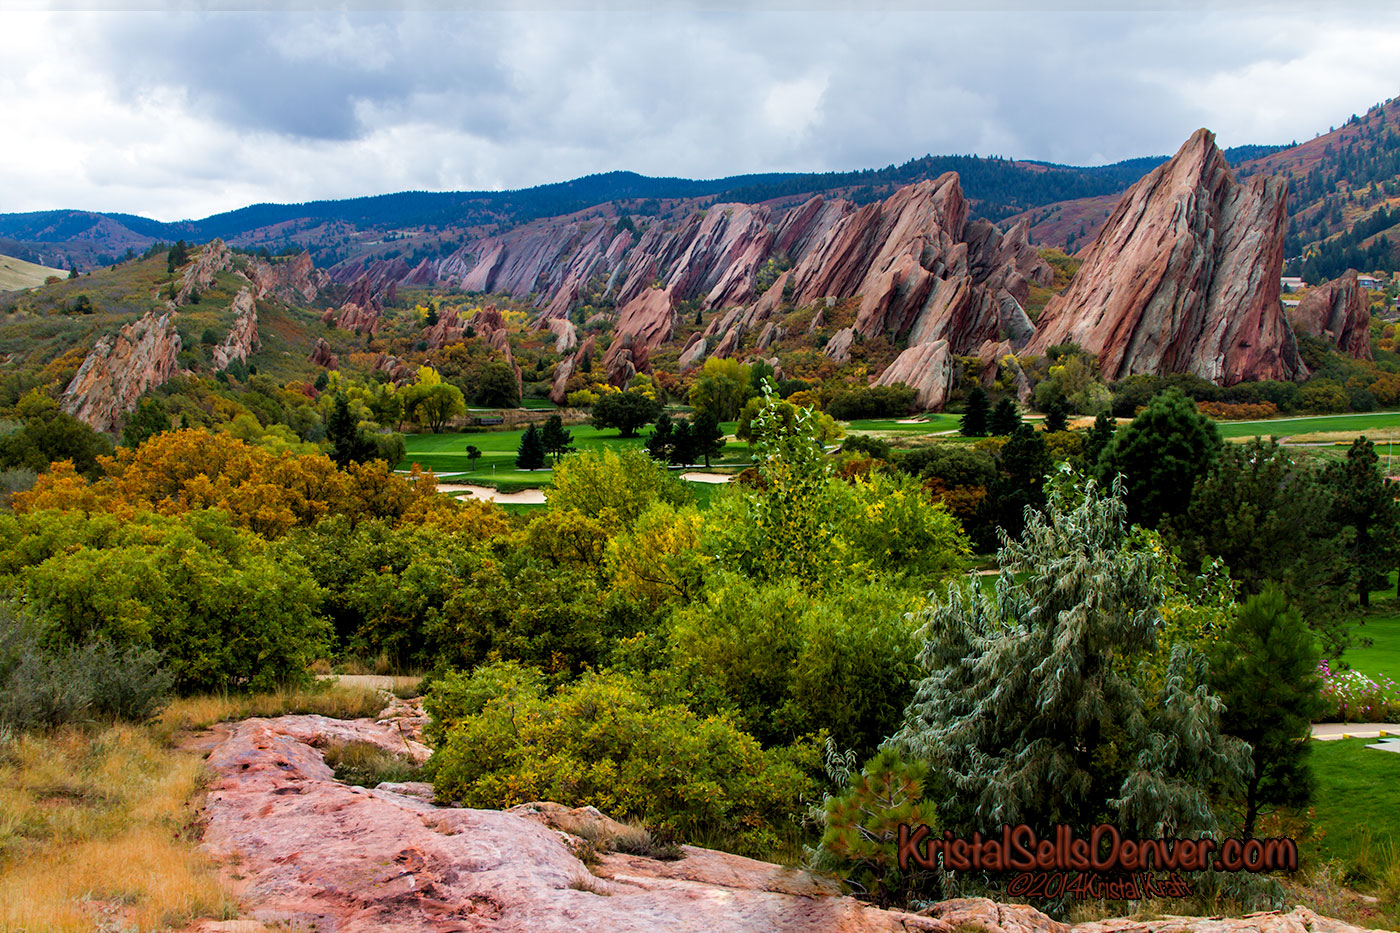 Arrowhead Golf Course with a view of the red rocks